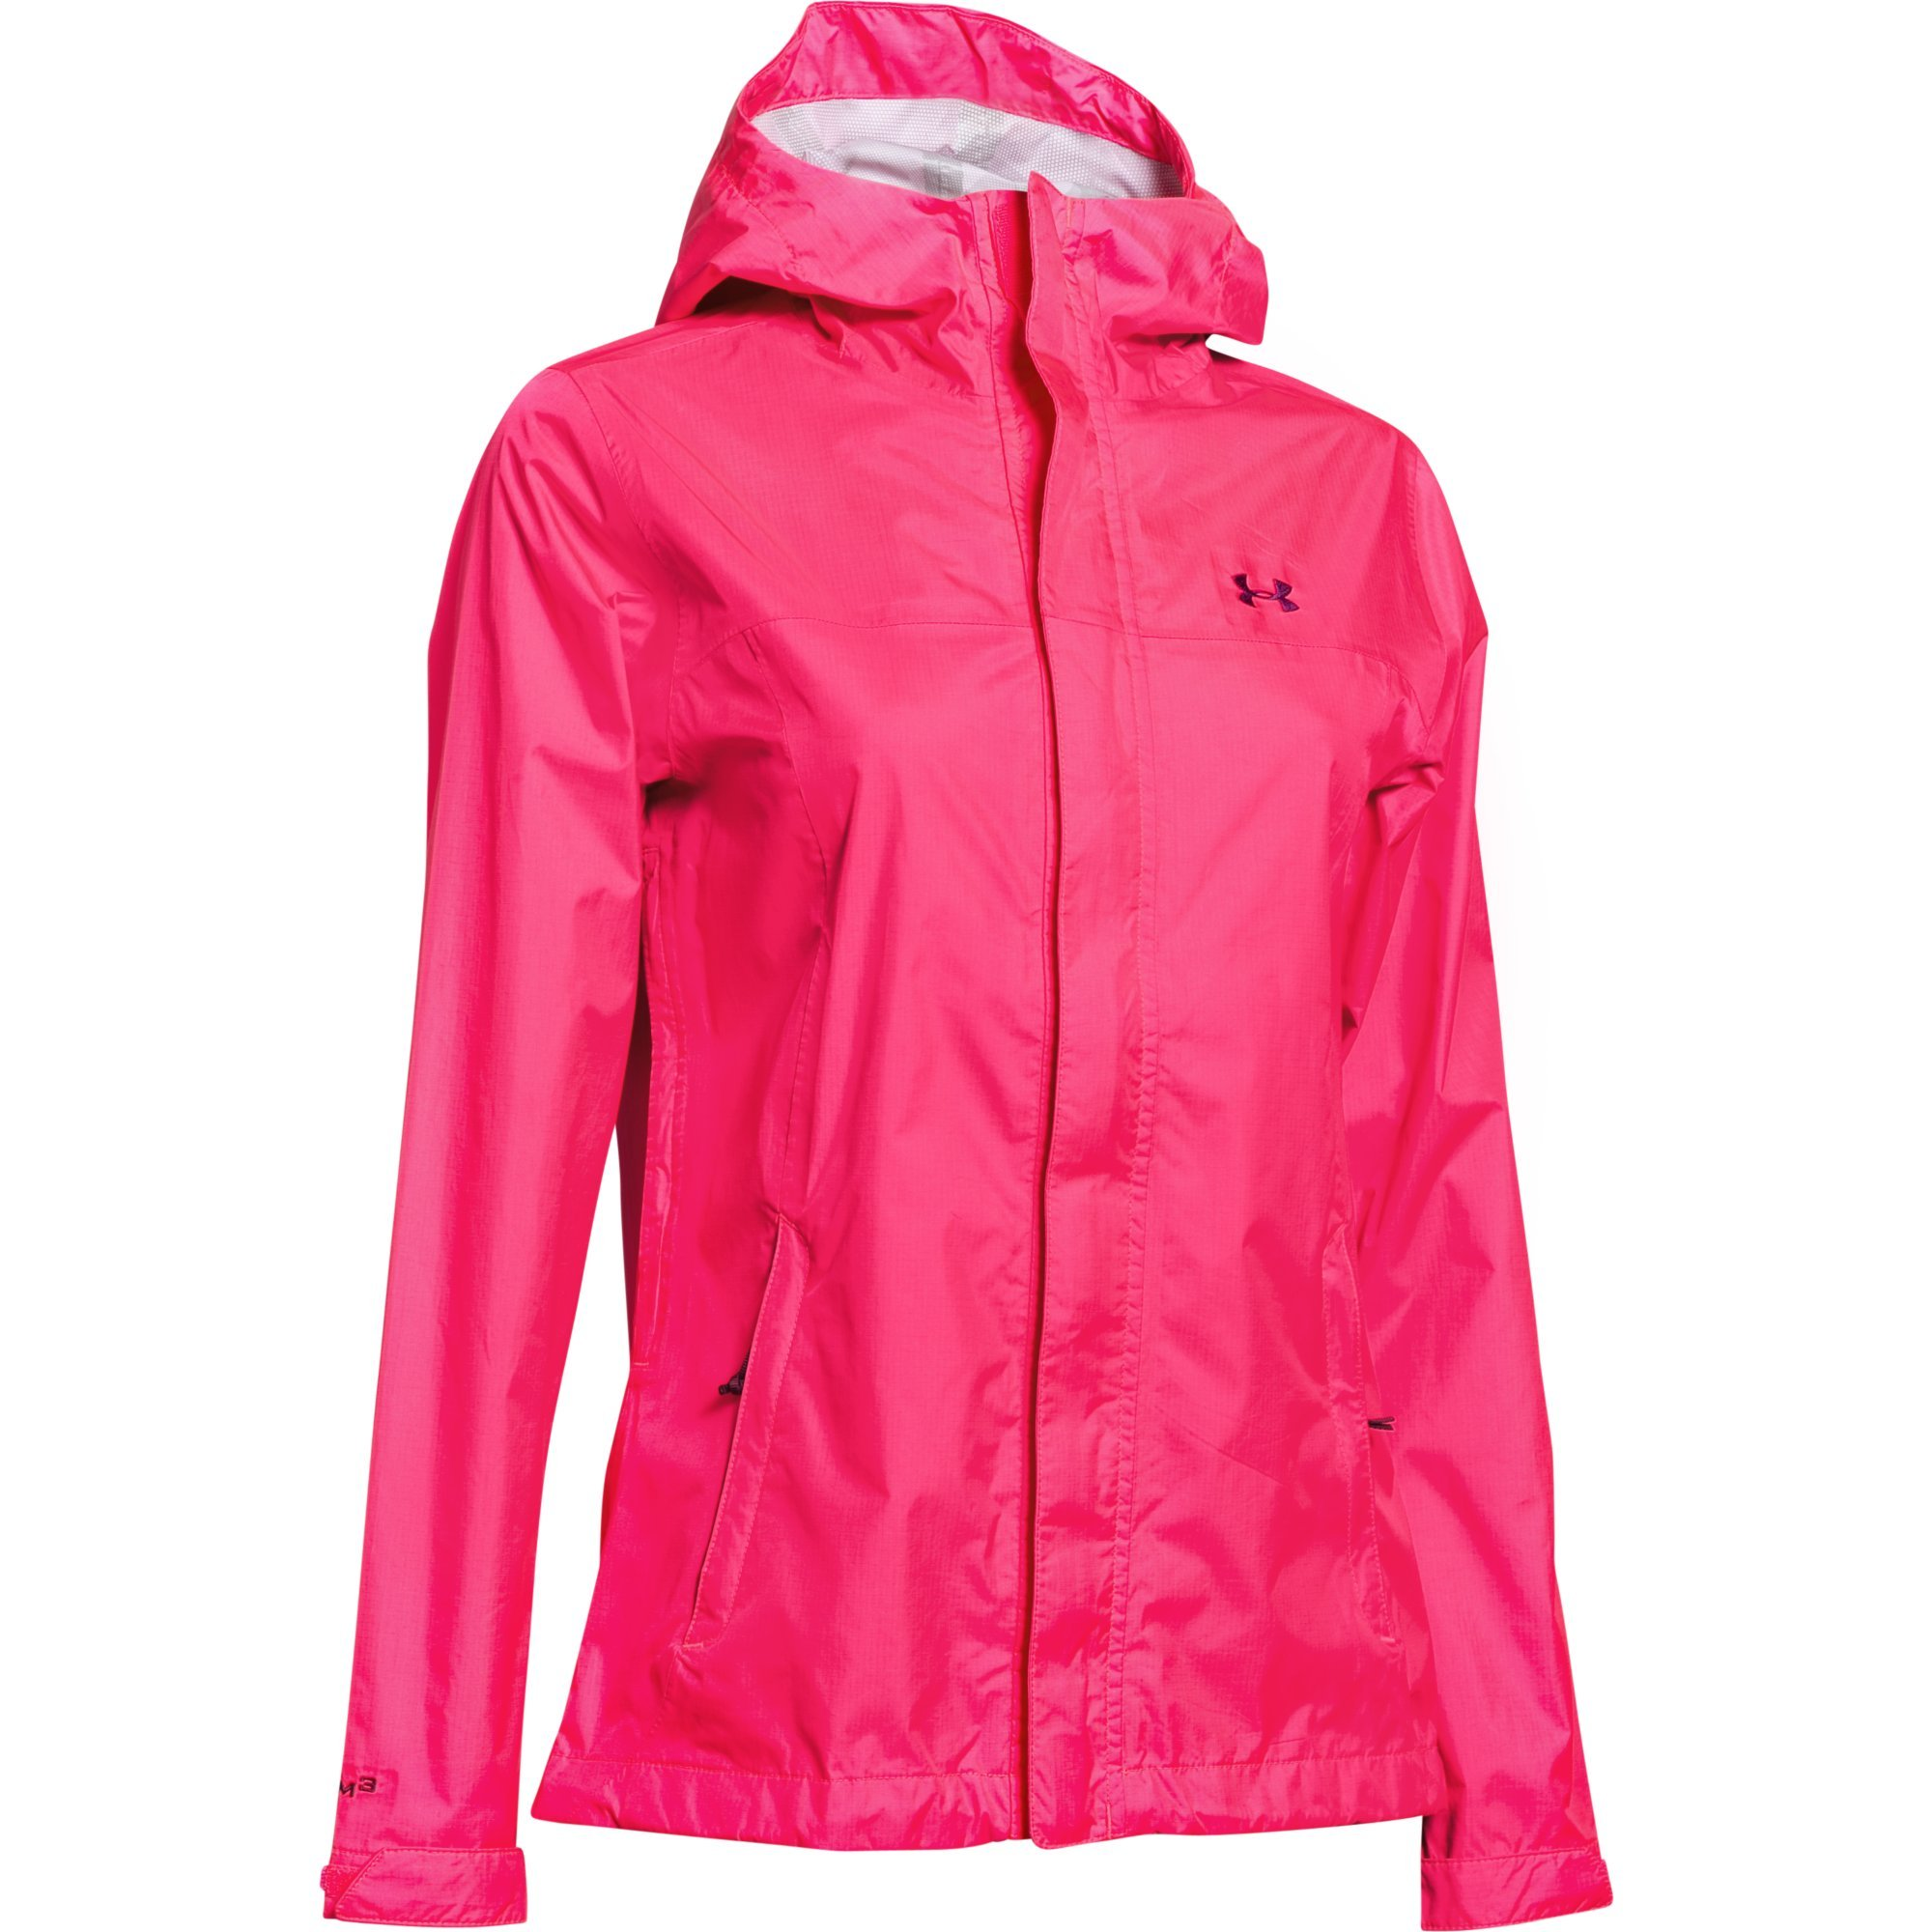 Under Armour Womens UA Surge Jacket Large HARMONY RED